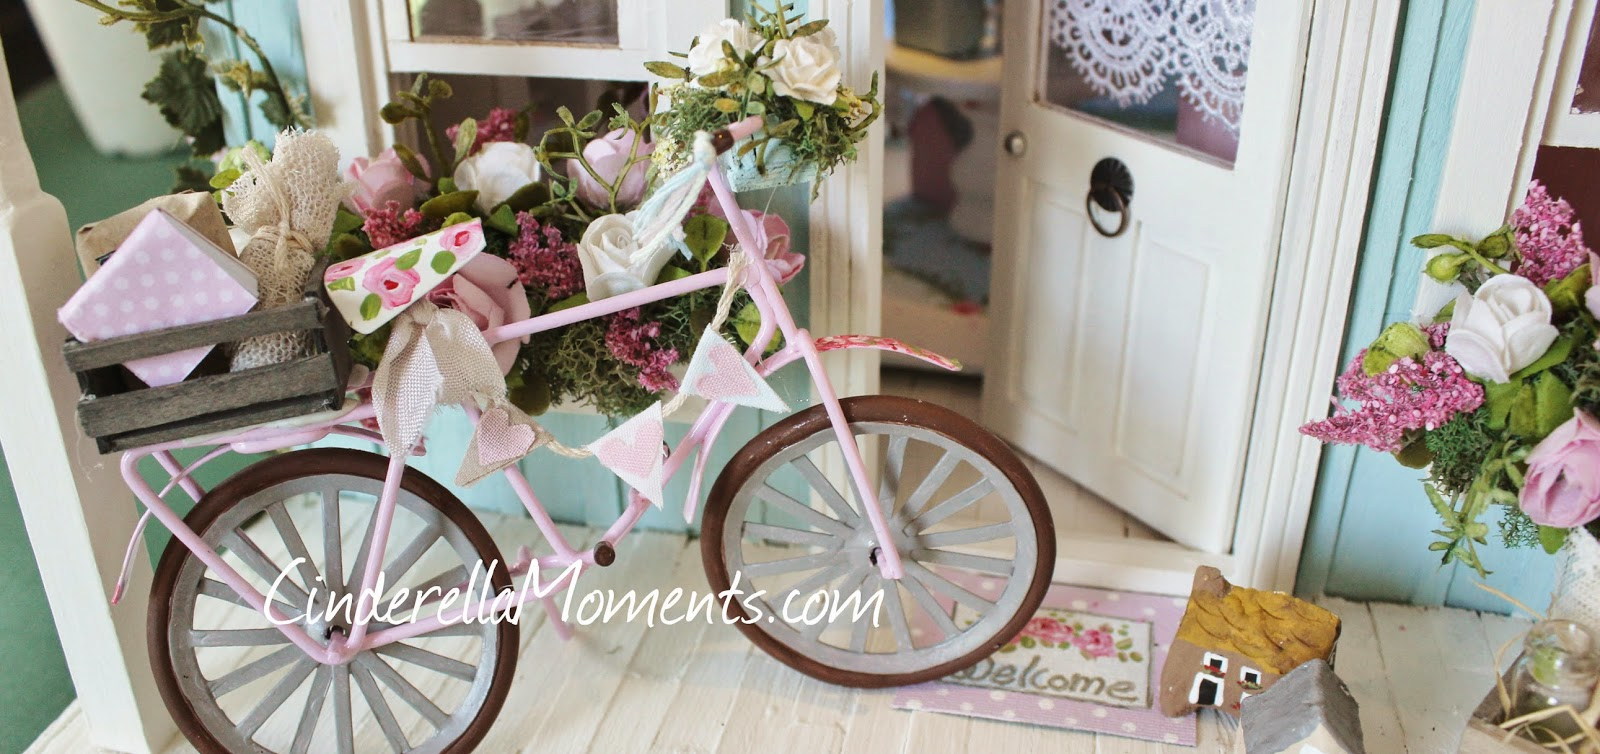 Cinderella Moments Hart And Bear S Shabby Shop